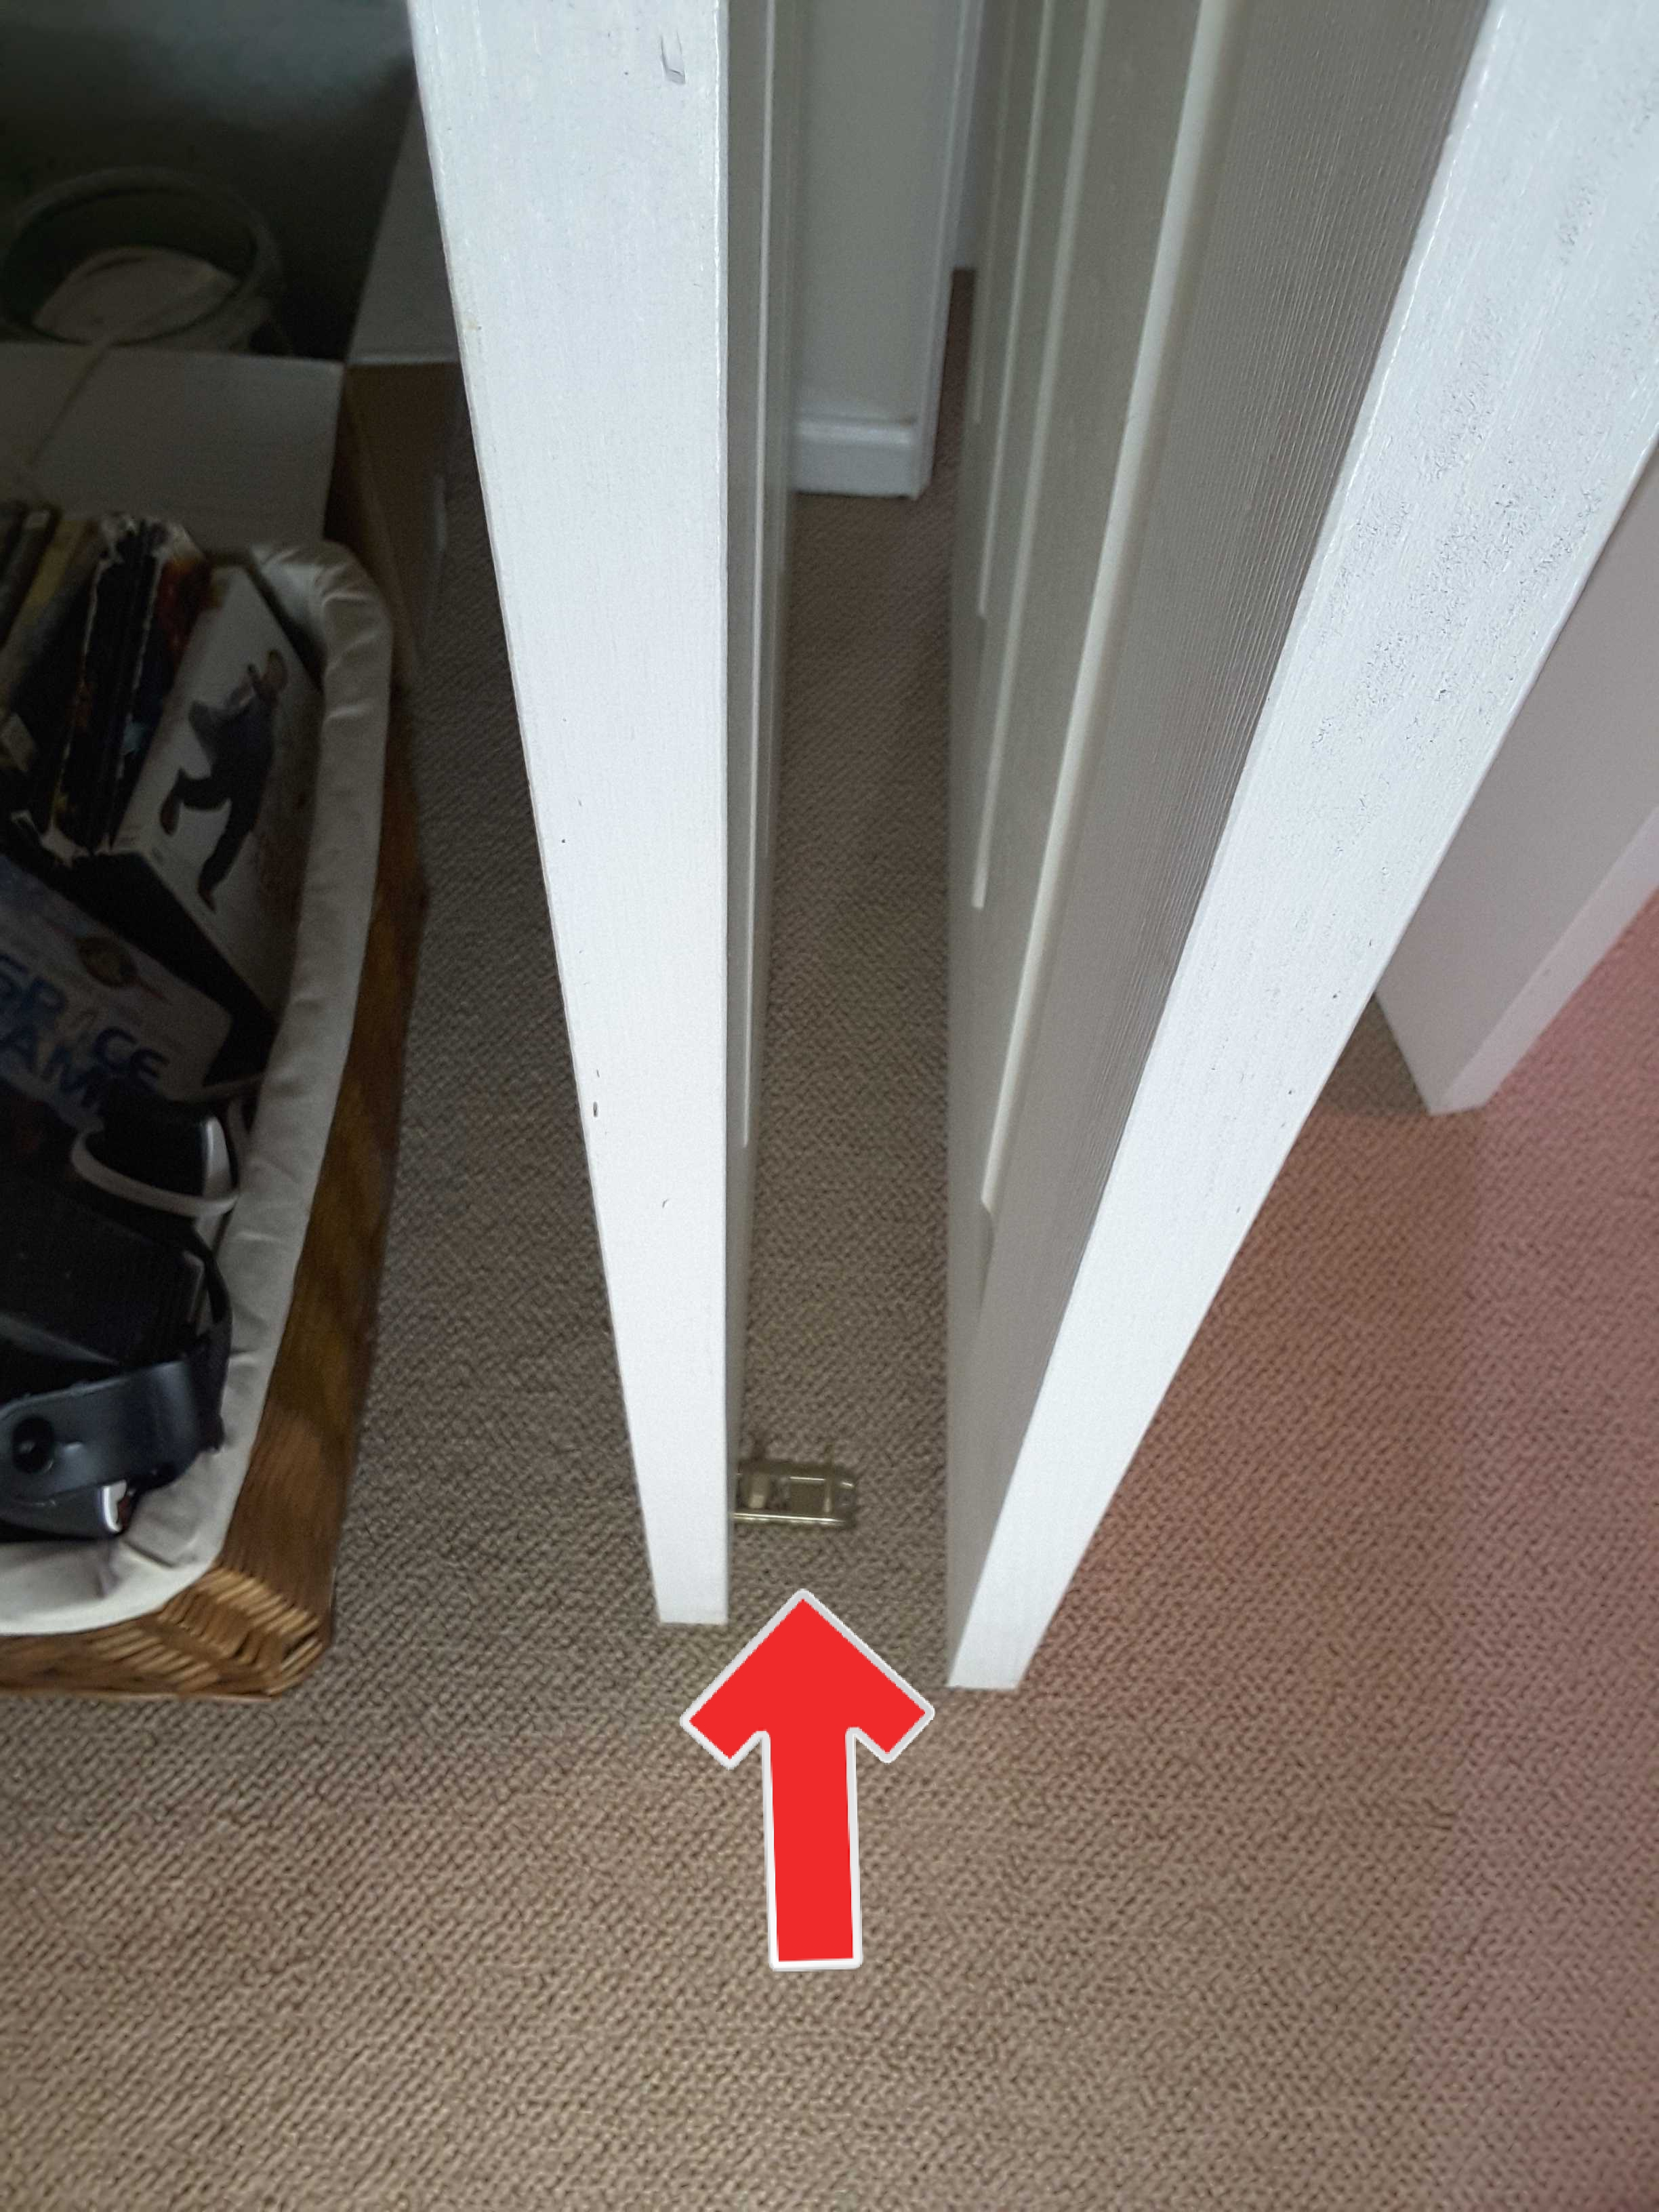 Missing or damaged closet door guides allow closet doors to swing freely and possibly slip off their tracks. It's an easy/inexpensive repair that only takes minutes to fix.